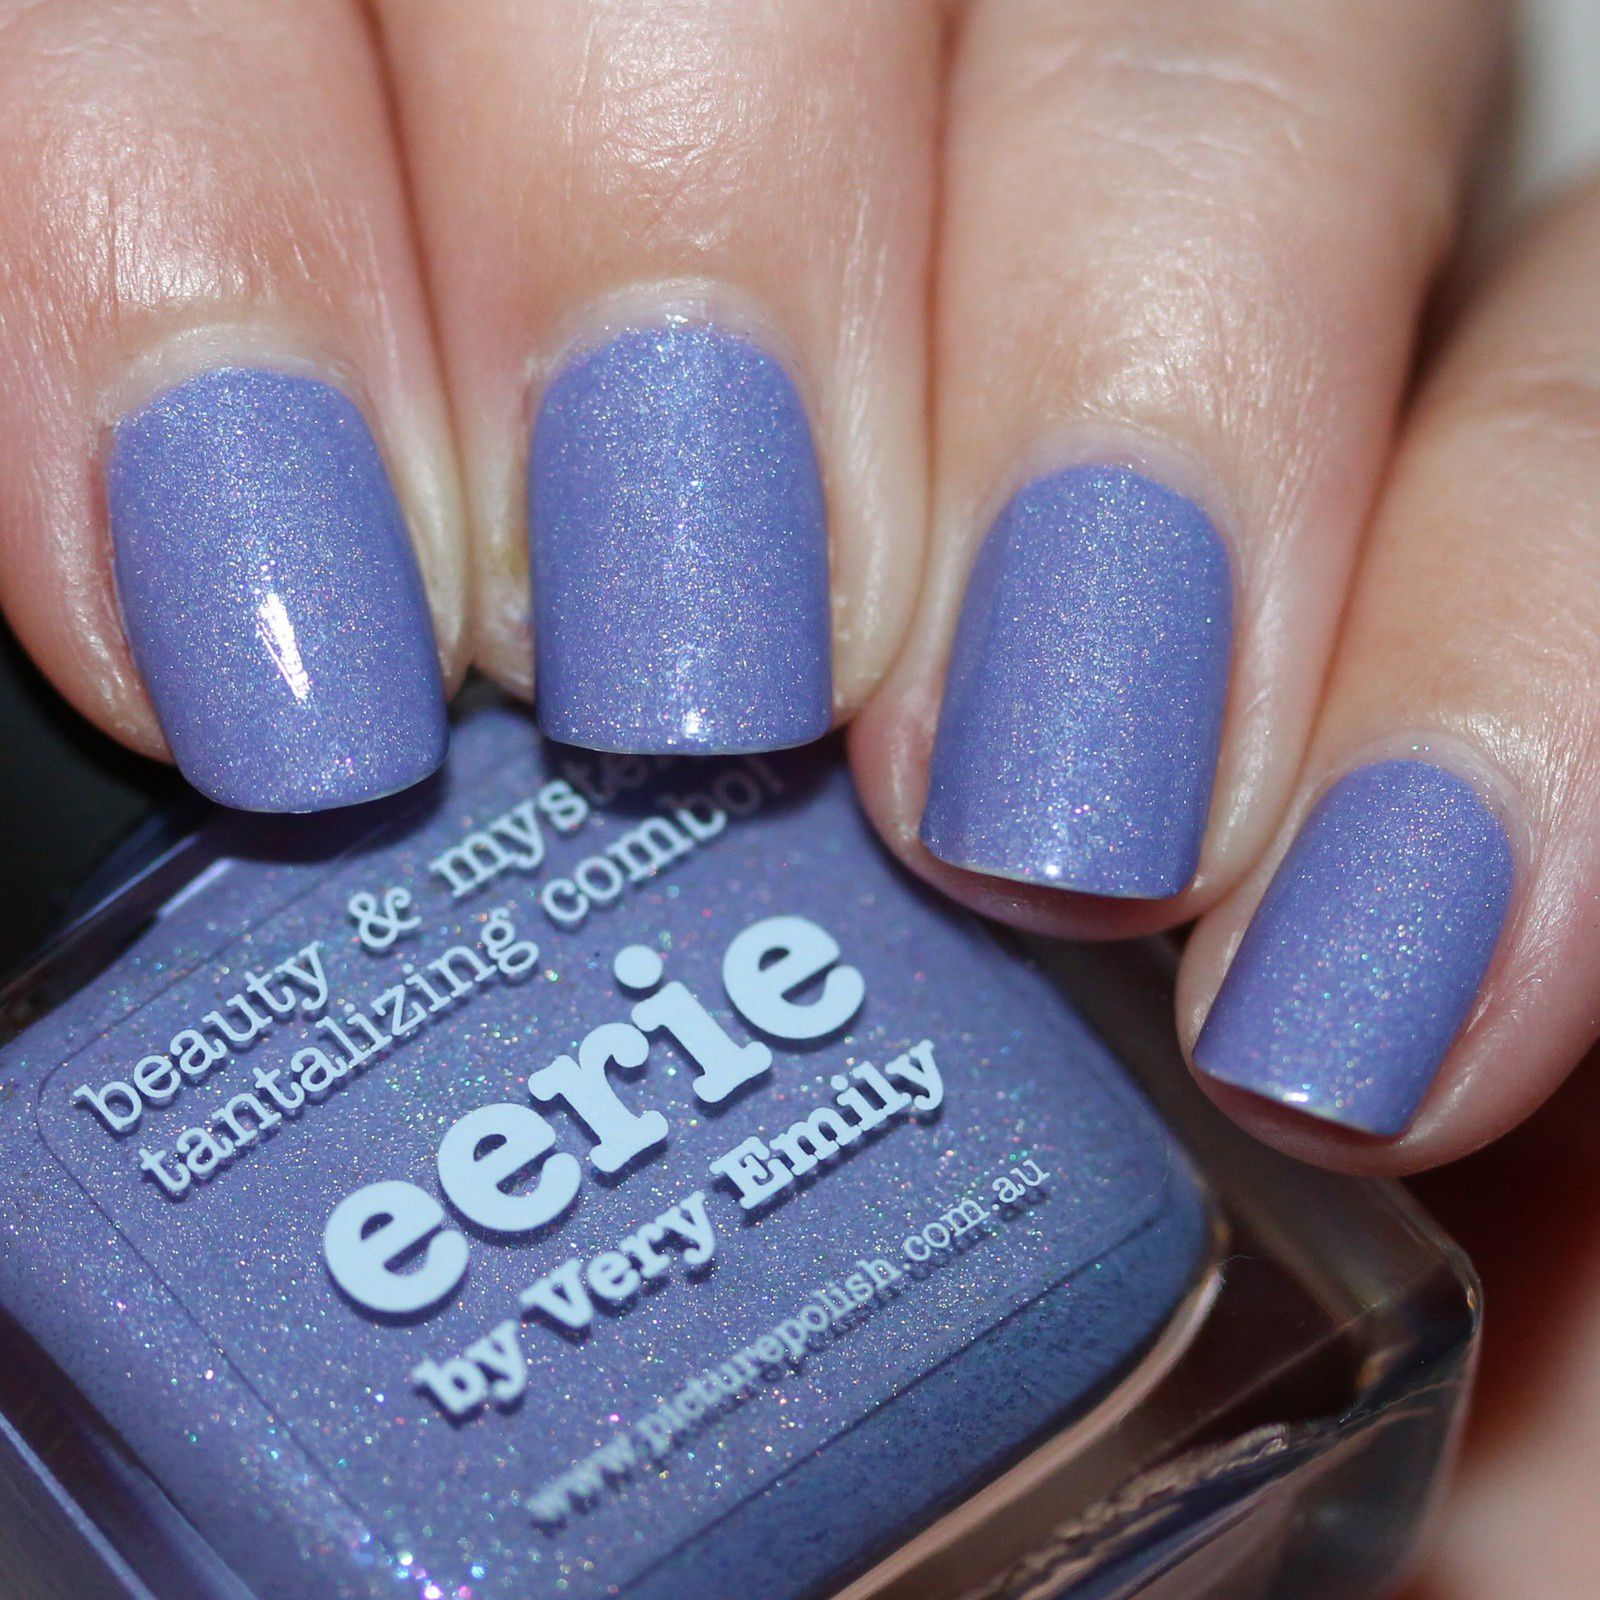 Essie Protein Base Coat / piCture pOlish Eerie / Poshe Top Coat